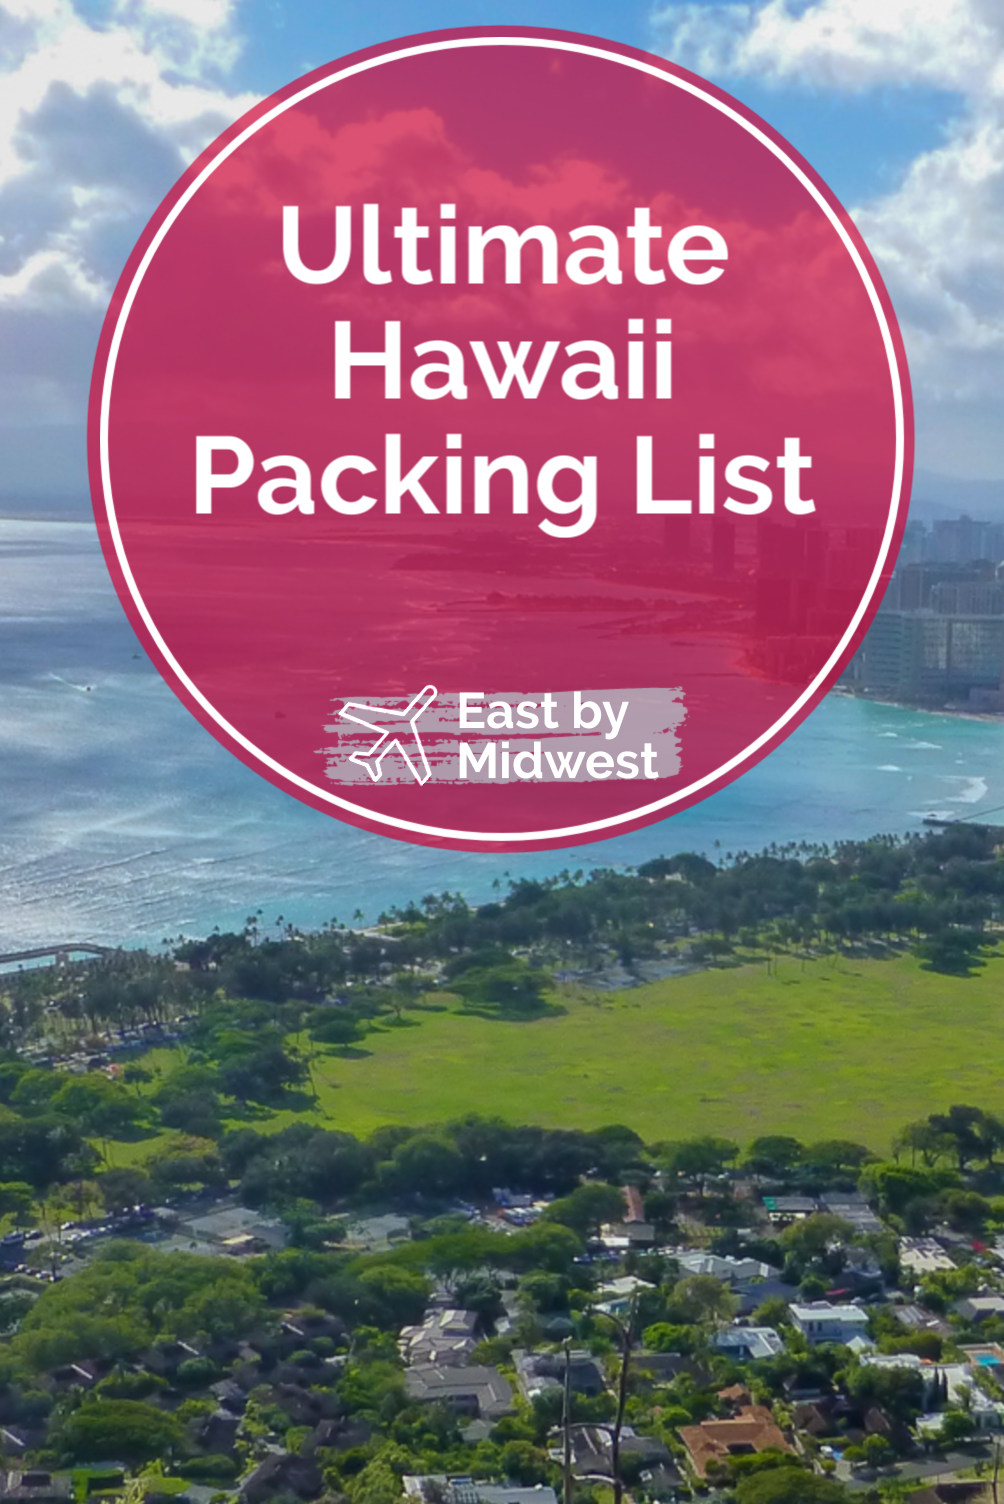 Hawaii has so many cool activities that it can be hard to decide what to pack. I\'ve got you covered. Here\'s everything you need for an amazing adventure. #hawaii #oahu #bigisland #packing #packinglist #packforhawaii #packinglistforhawaii #whattopack #beachpackinglist #minimalistpacking #carryontravel